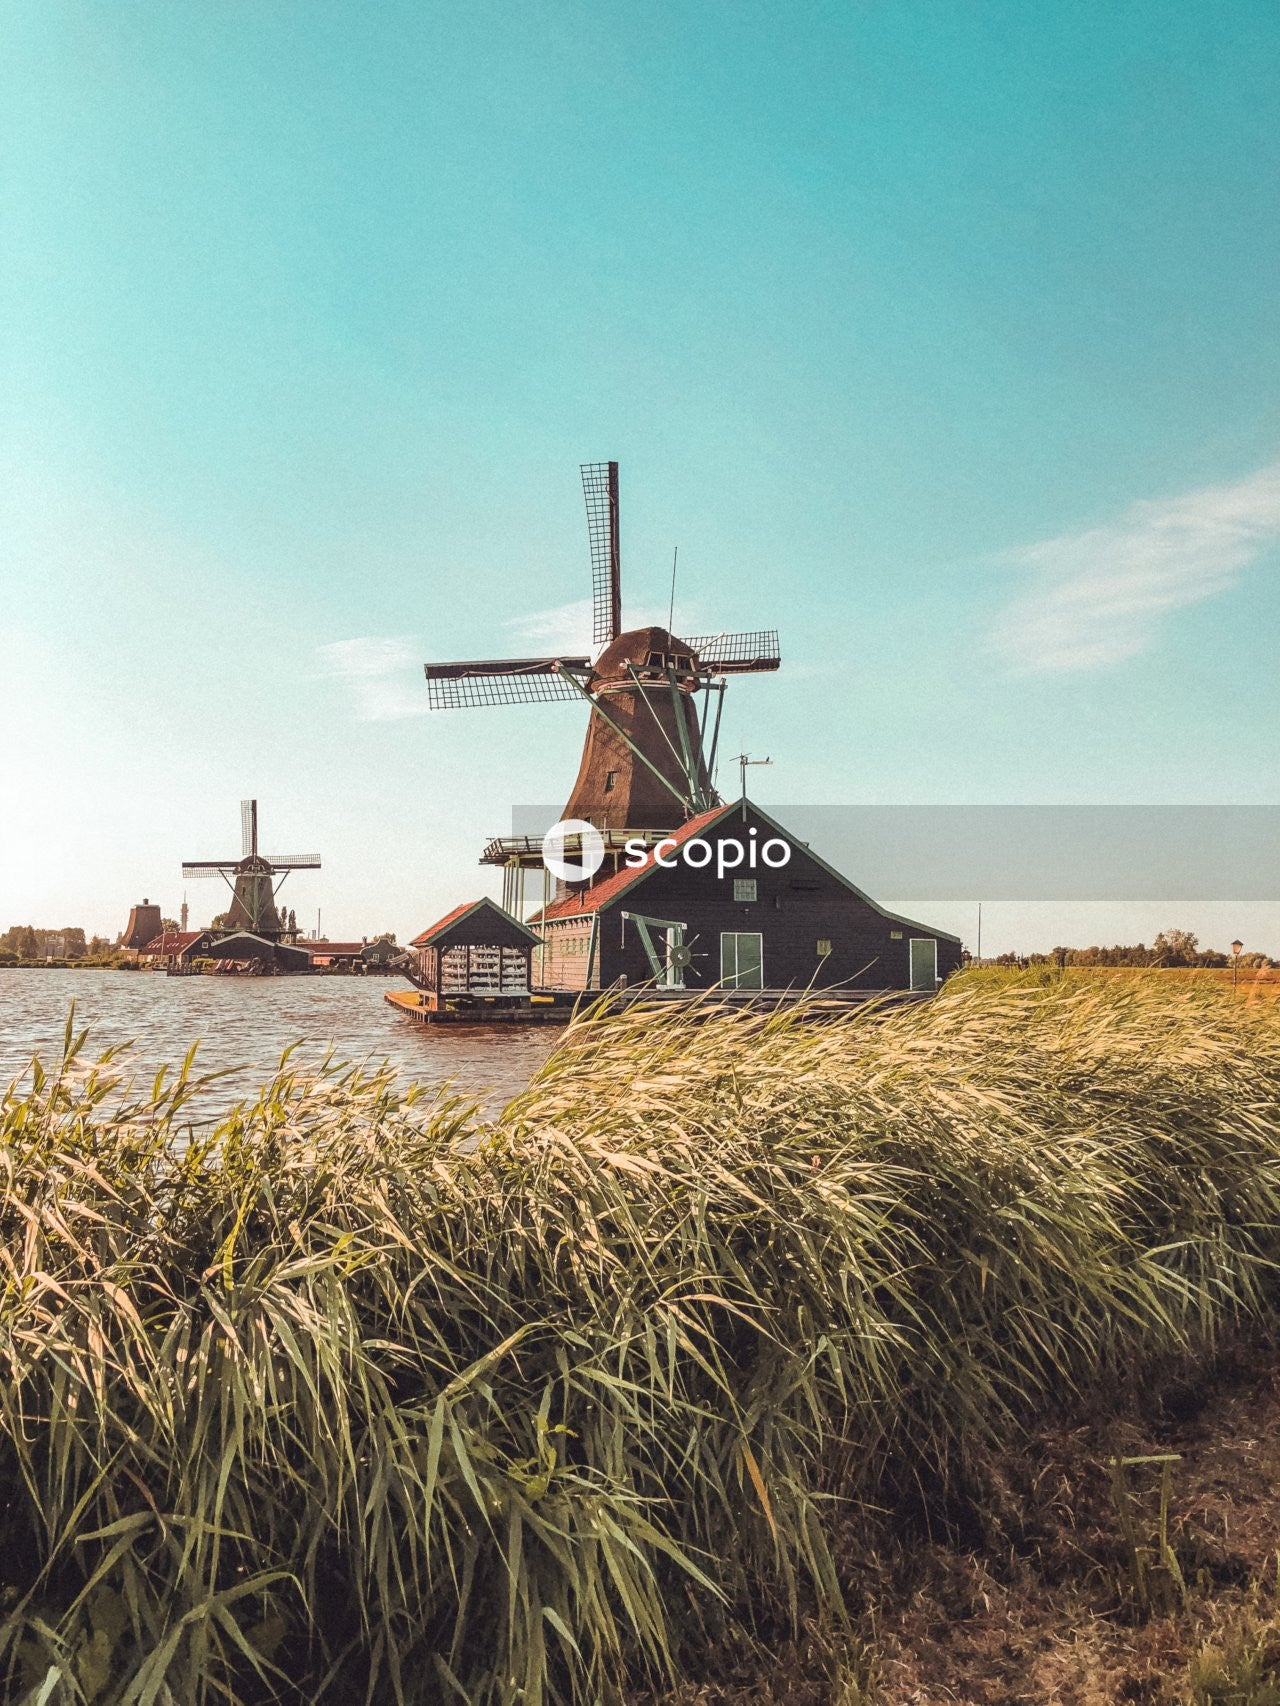 Brown windmill near body of water